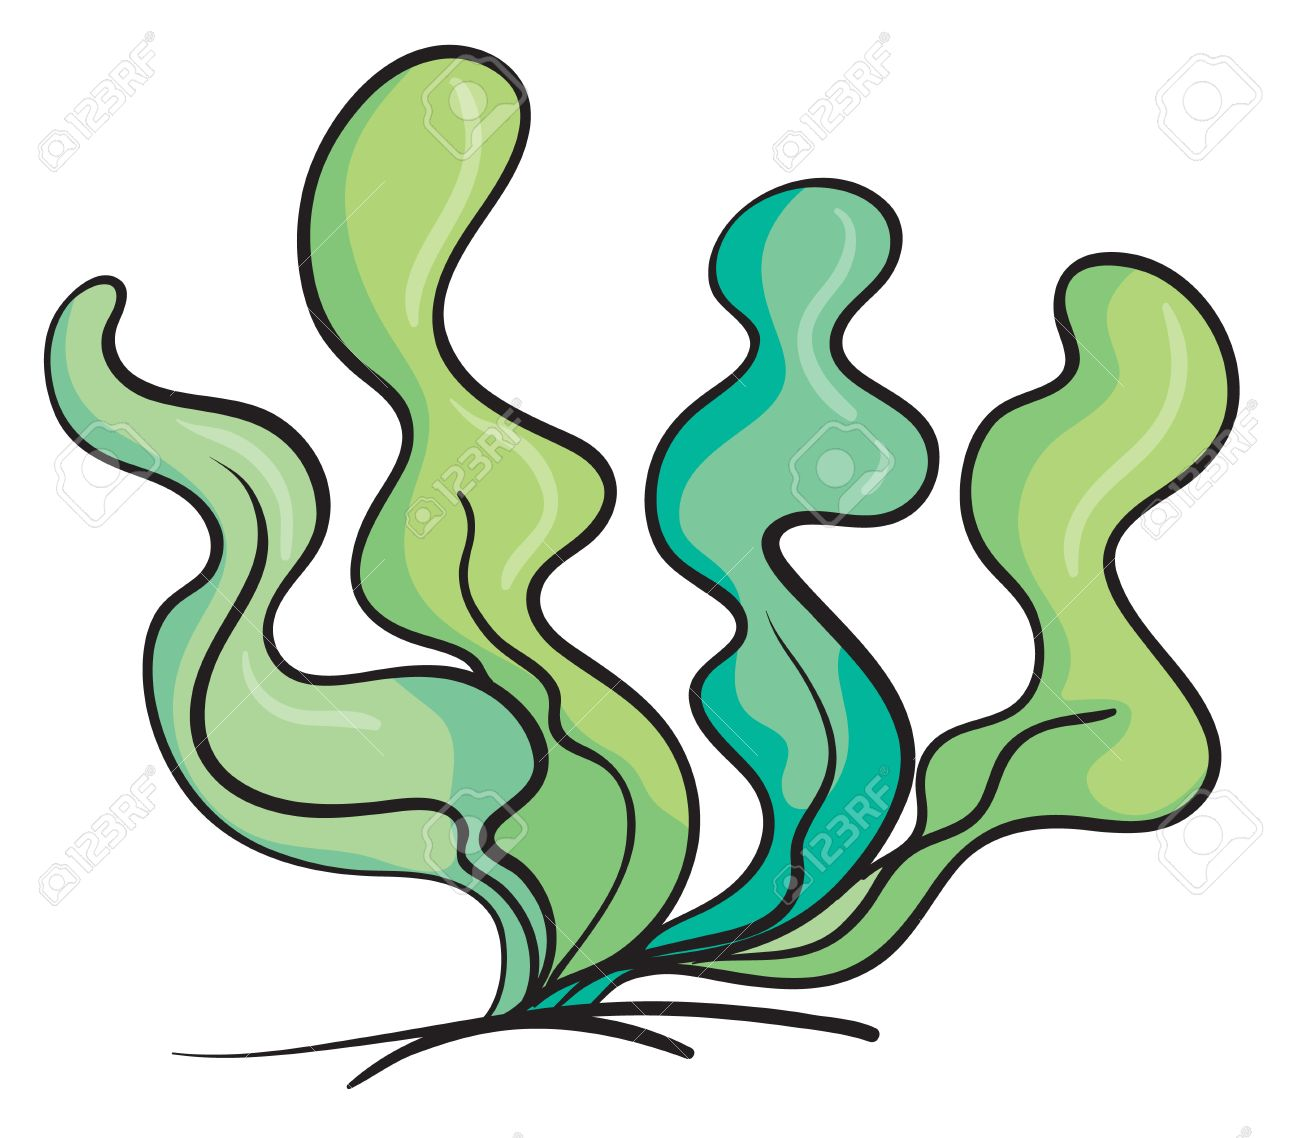 Under The Sea Plants Clipart.